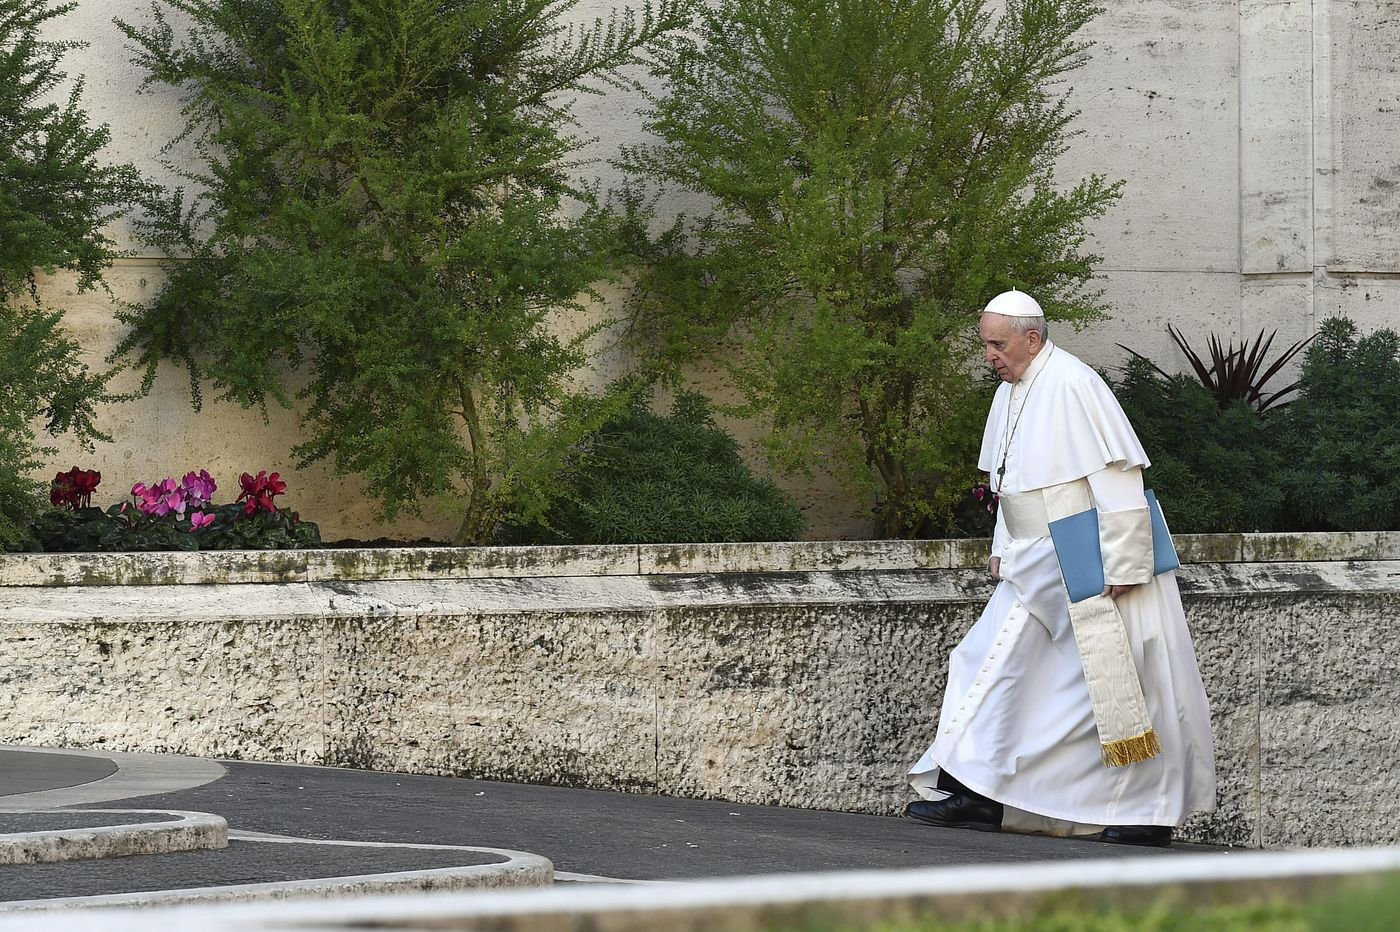 Pope Francis seeks solutions, victims skeptical as historic clergy sex-abuse summit opens in Rome